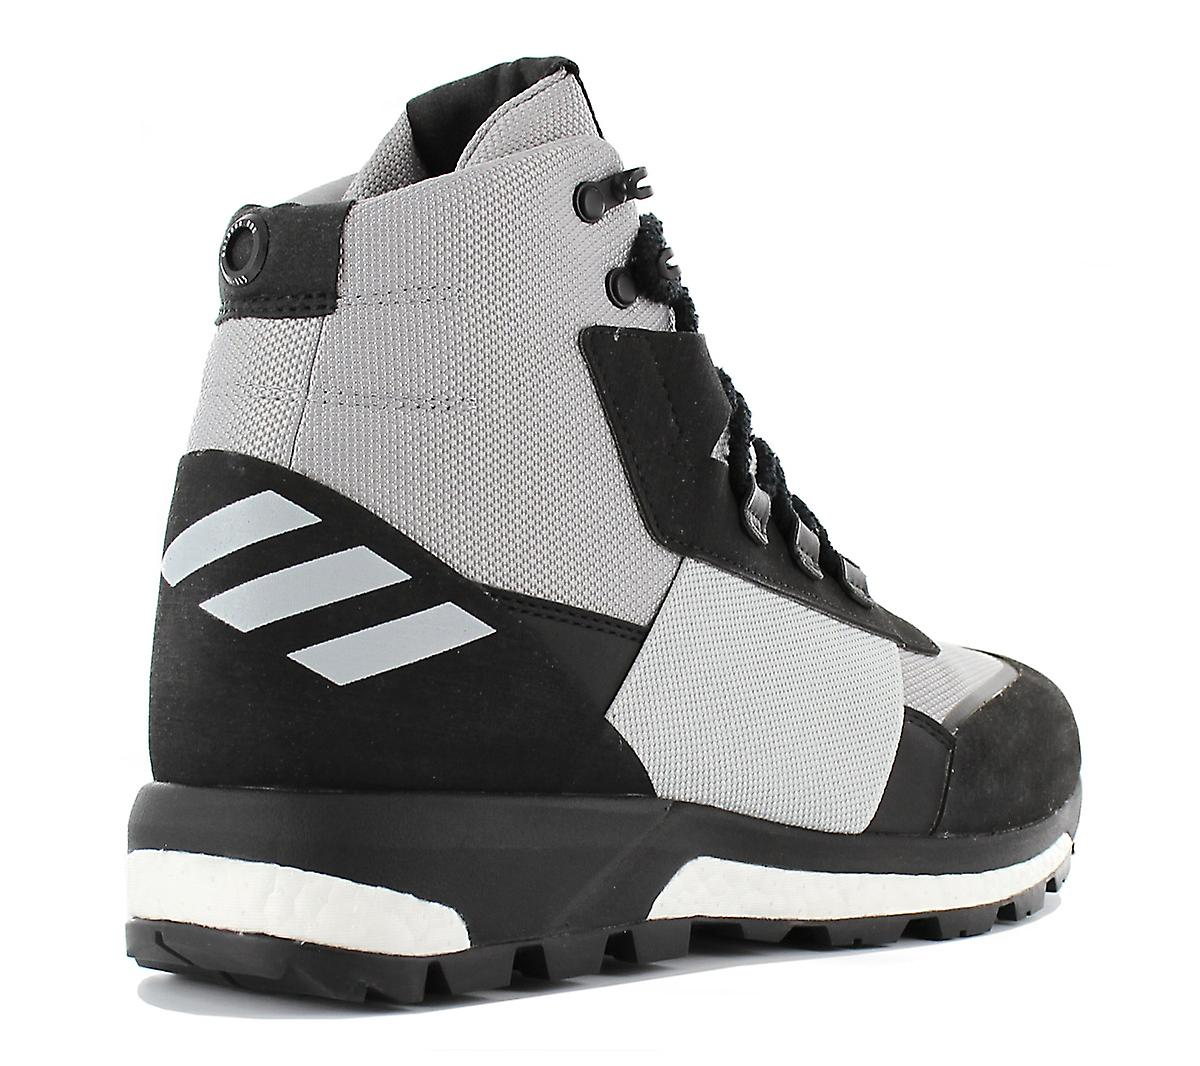 Adidas Ado Ultimate Boot Day One Edition Cq2609 Herren Boots Grau Sneakers Sportschuhe